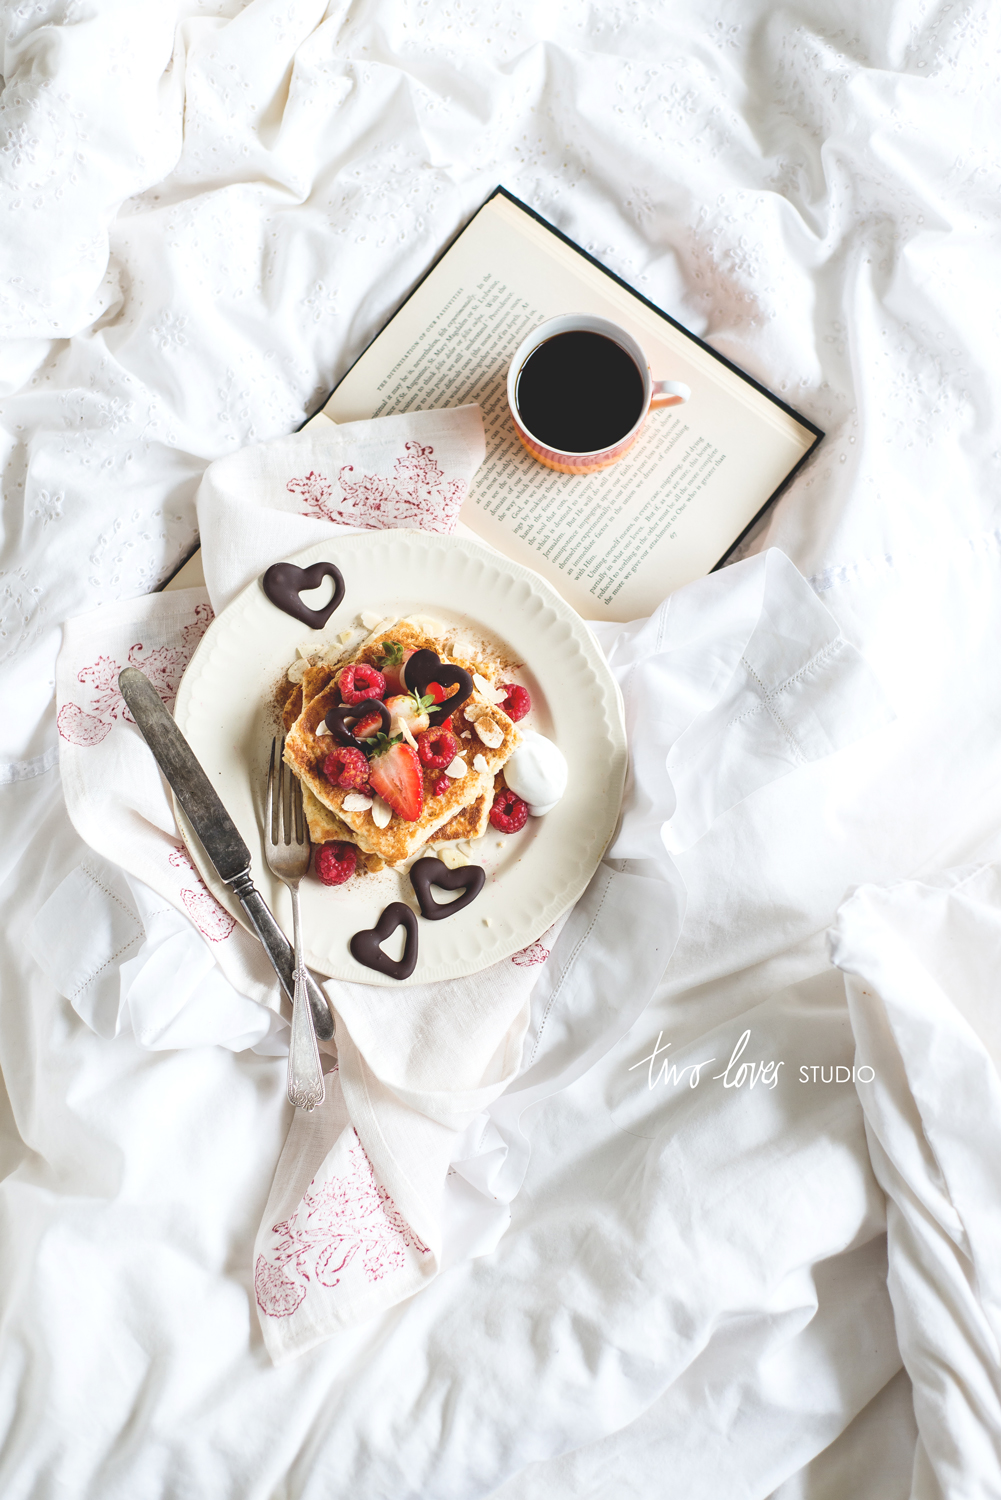 two-loves-studio-coconut-french-toast-with-dark-chocolate-hearts2w